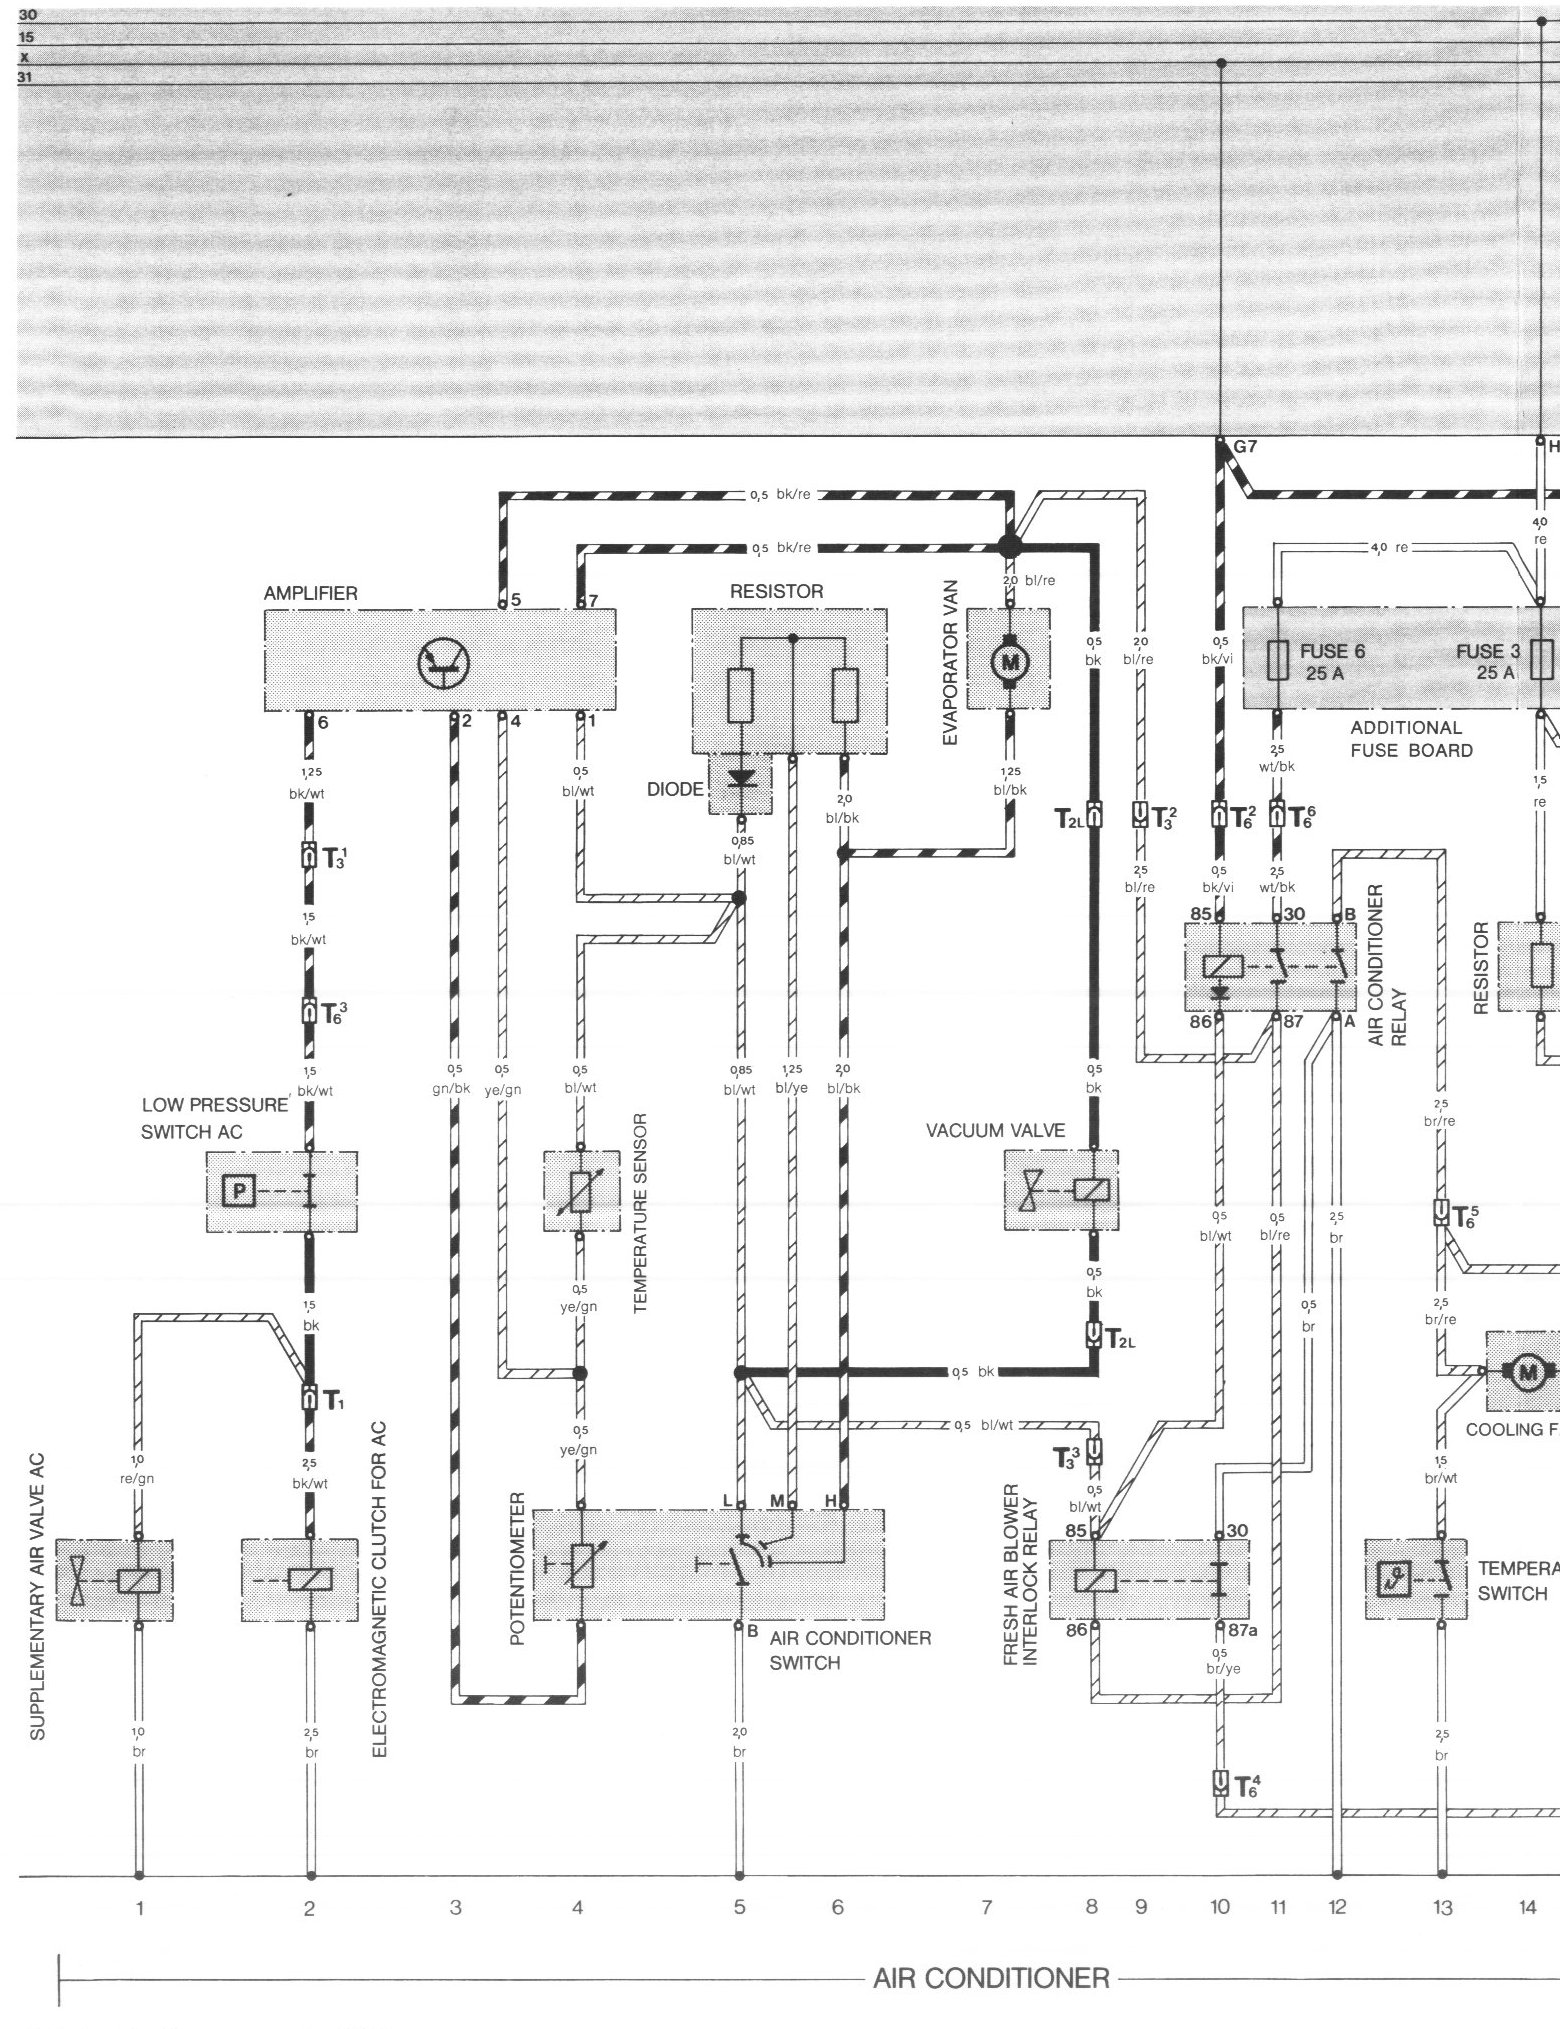 Pelican Parts Porsche 924 944 Electrical Diagrams Wiring Diagram In A C Page 1